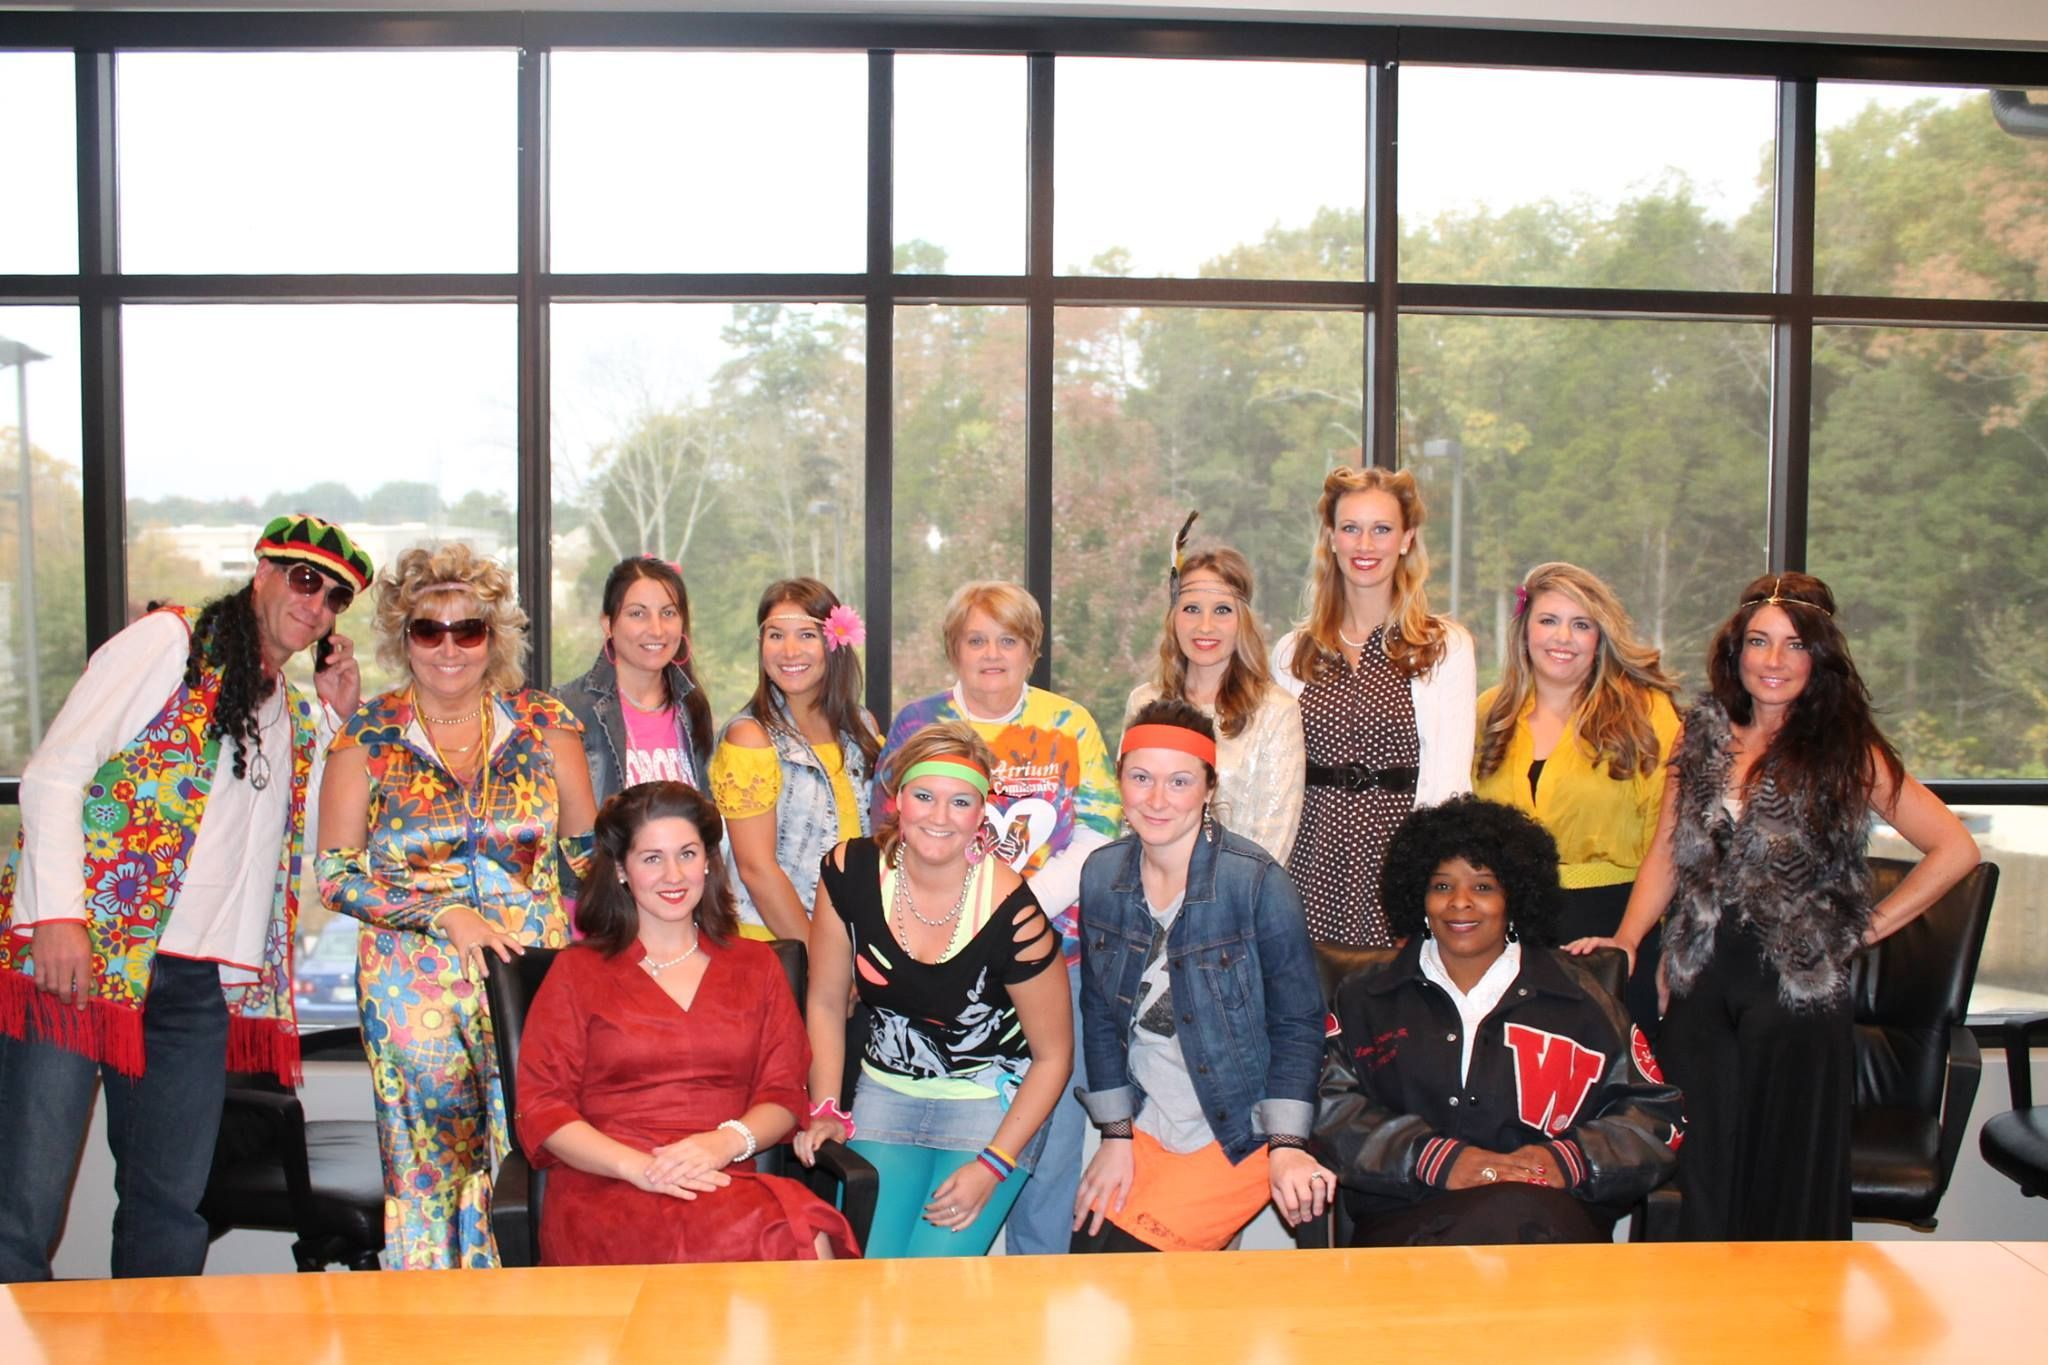 FP Corporate Office Staff on Decades Day!!! #decadesdayspiritweek FP Corporate Office Staff on Decades Day!!! #decadesdayspiritweek